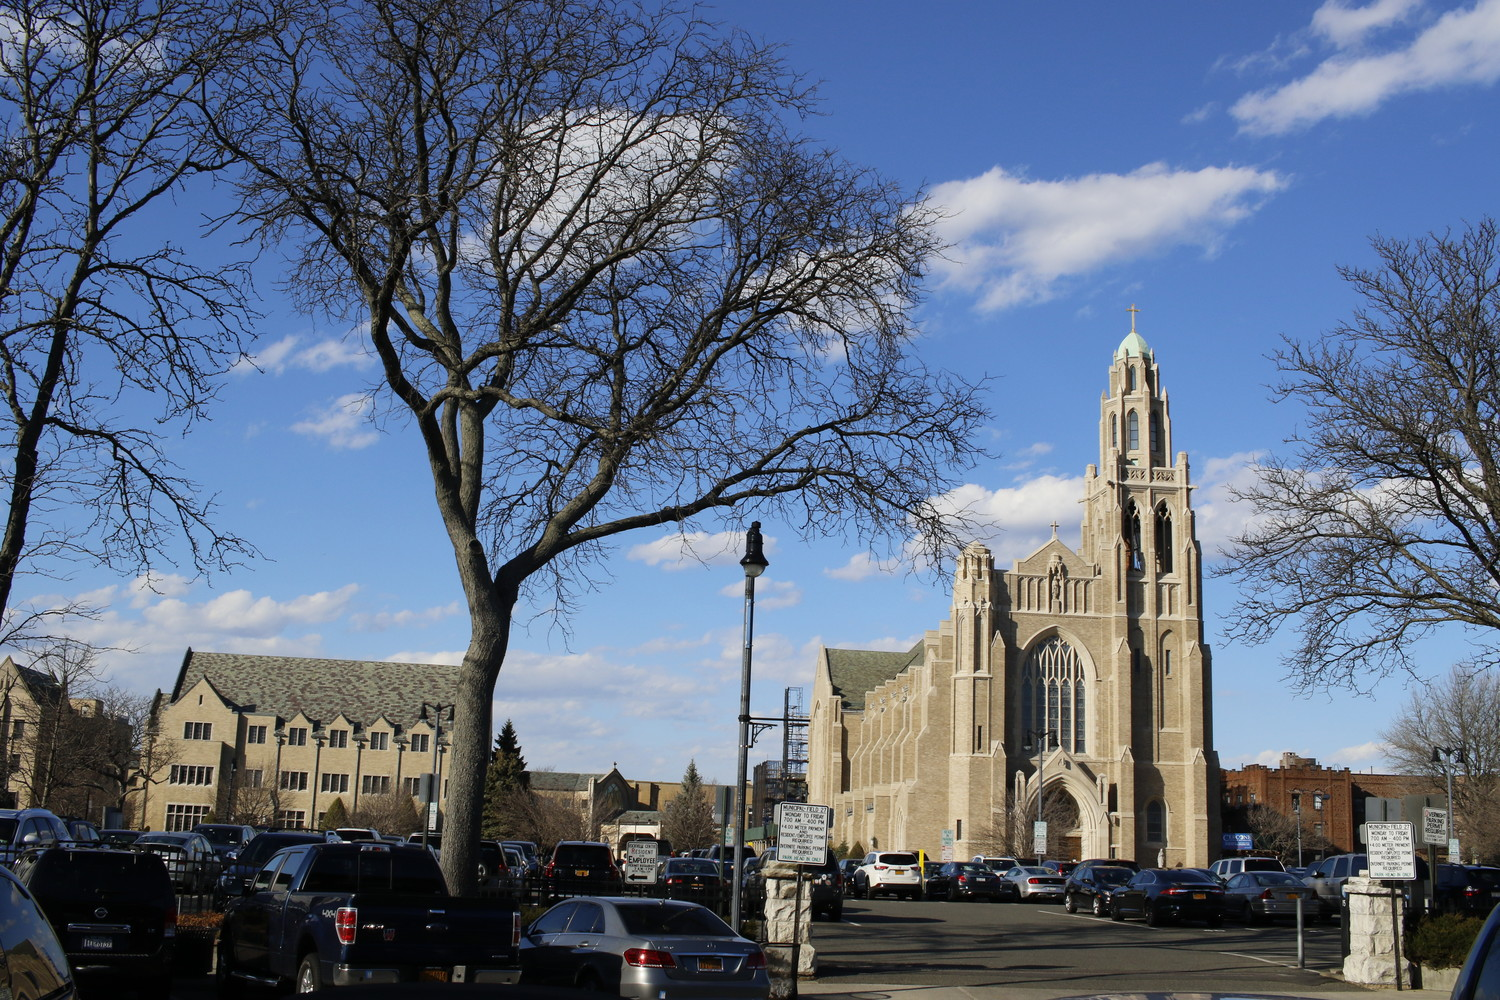 A Queens Village man has been arrested in connection with three burglaries in Rockville Centre. Police say that in each instance, he snuck in to St. Agnes Cathedral while the church was closed and stole from a donation box.